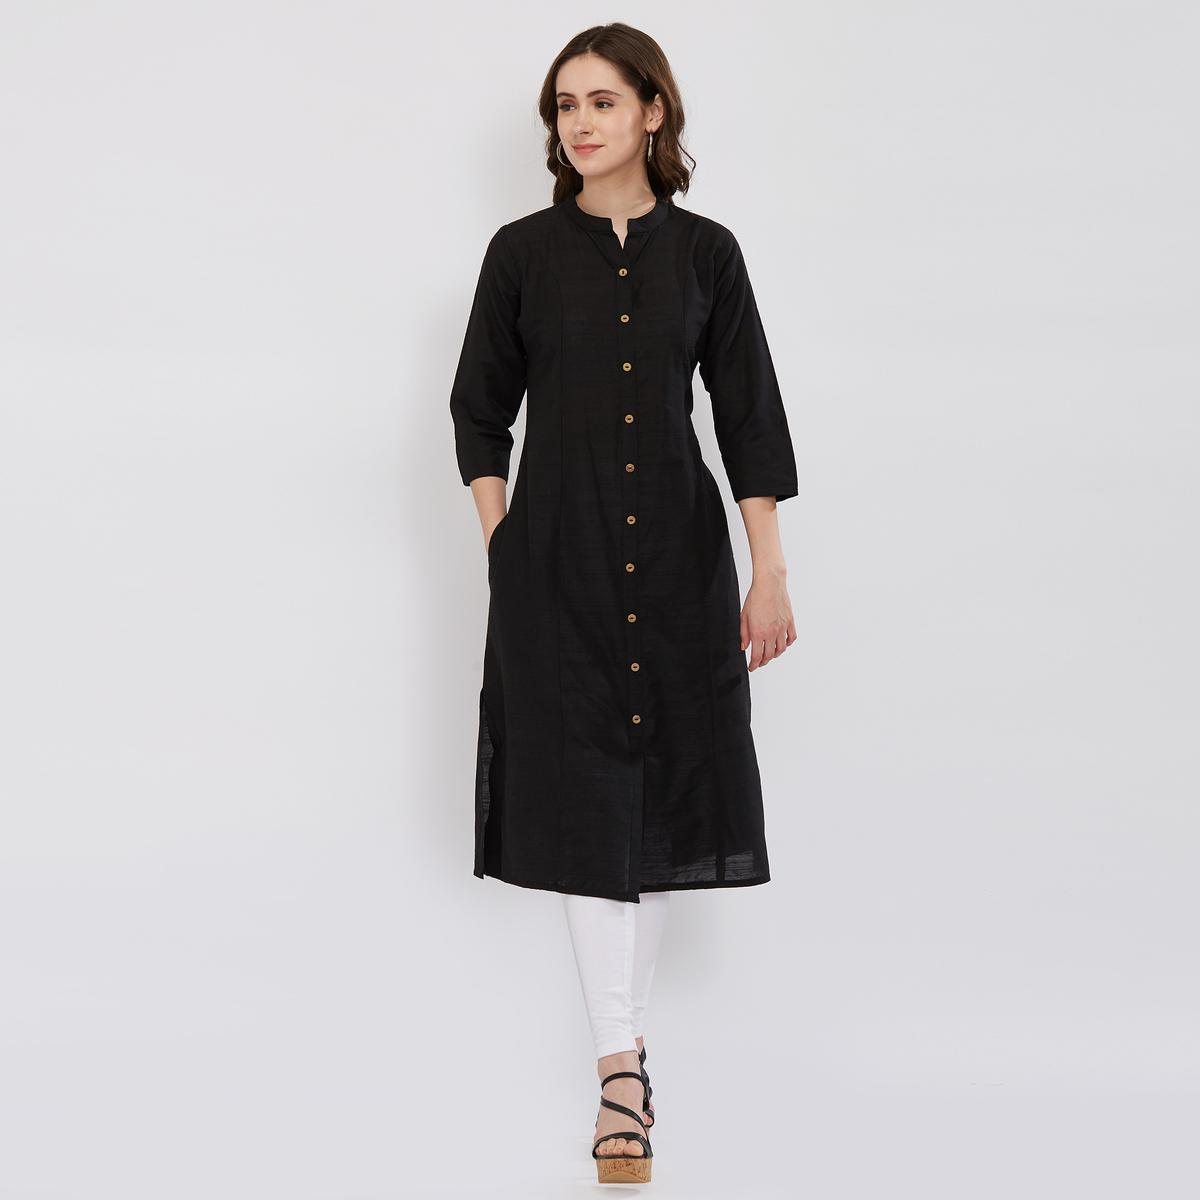 Flaunt Black Colored Partywear Kurti